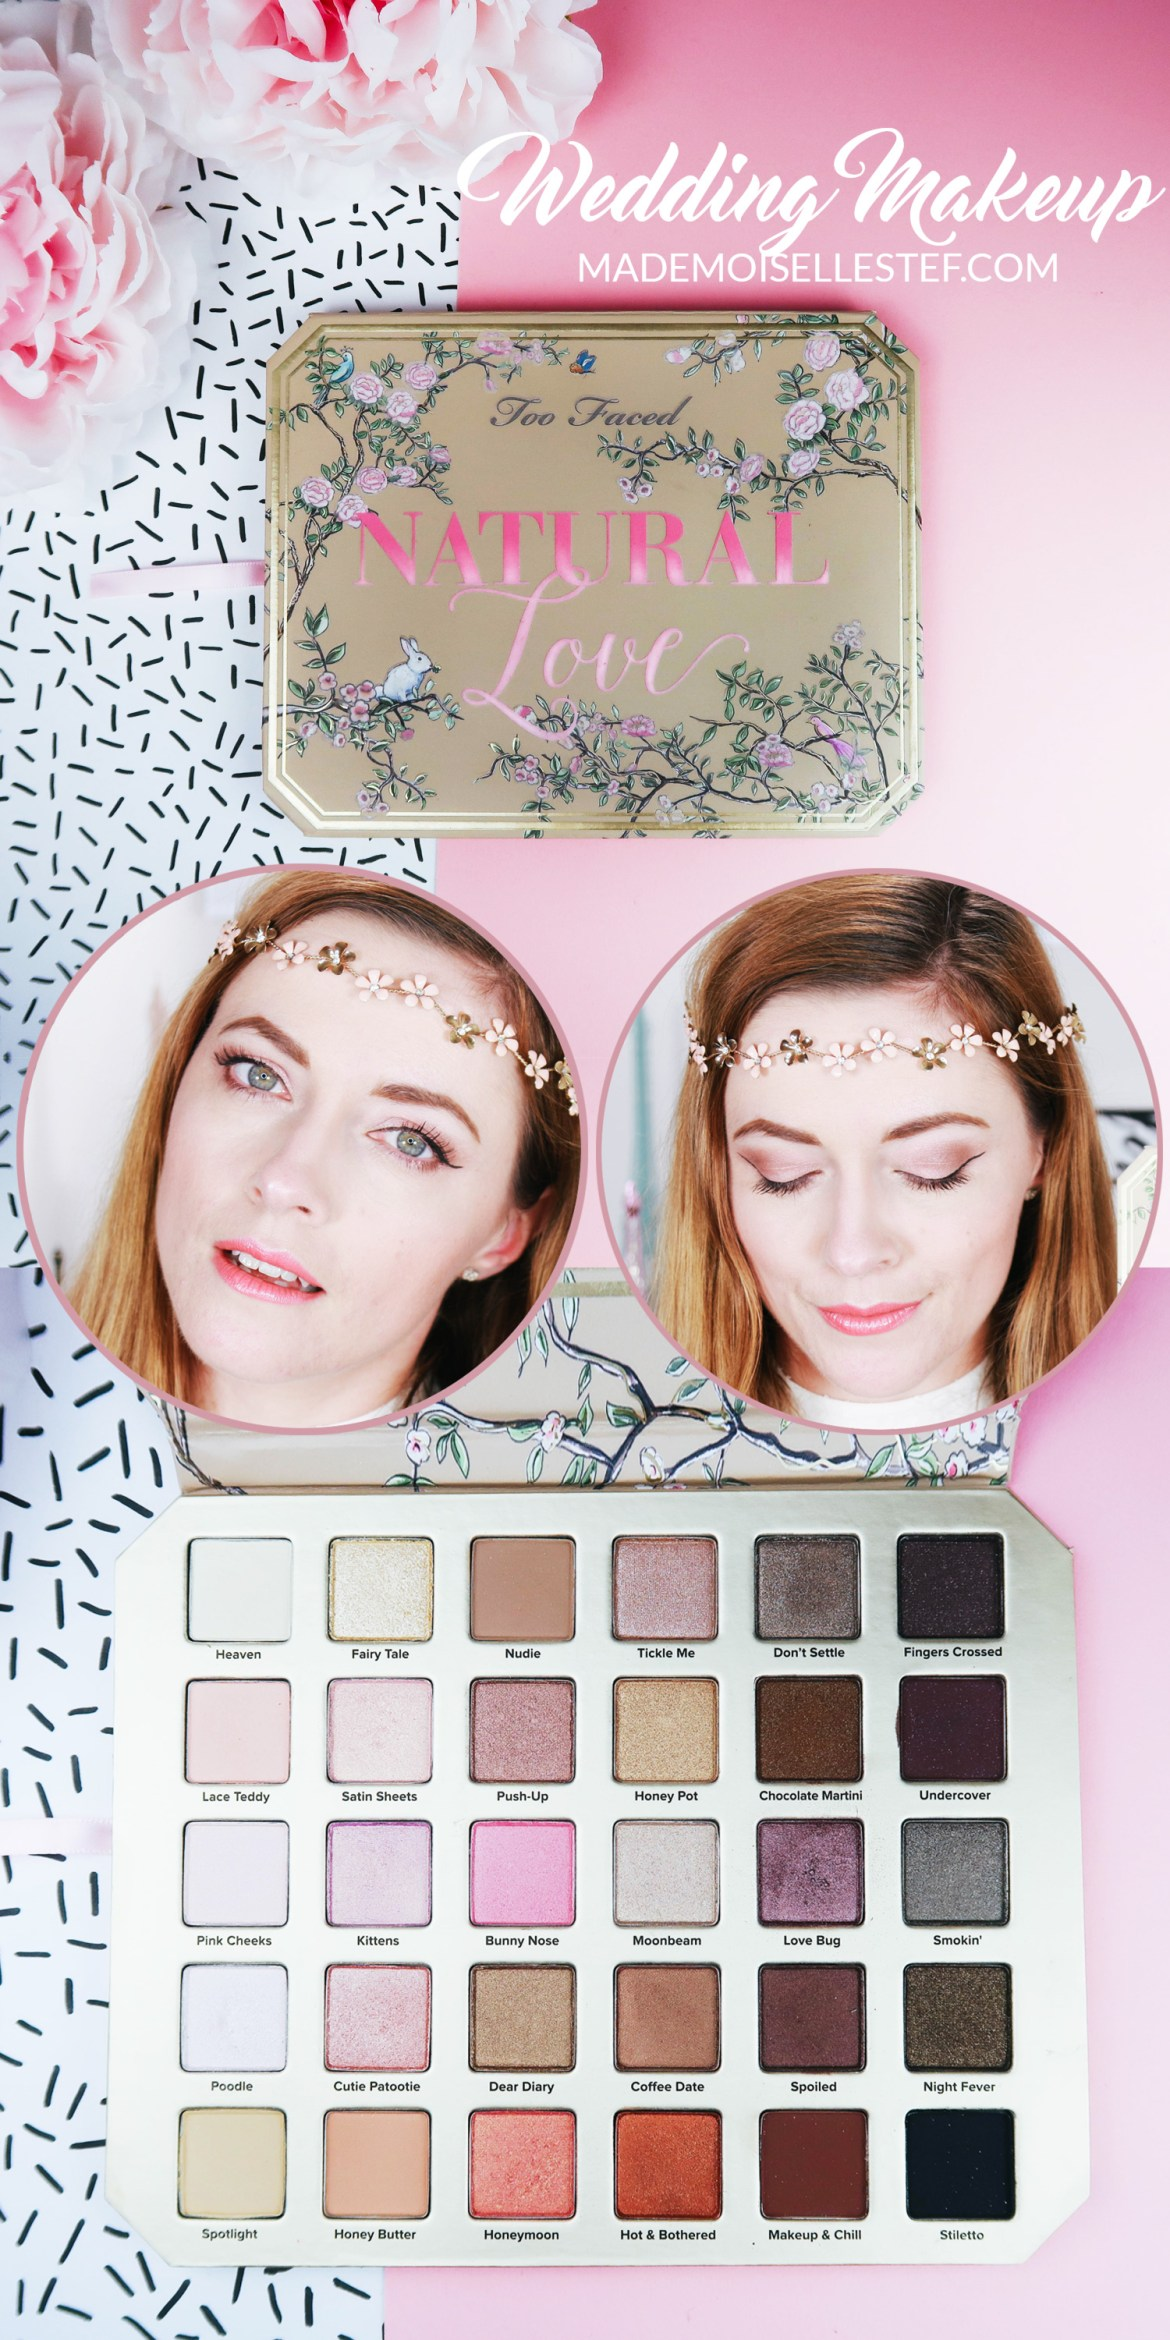 natural-love-too-faced-mademoiselle-stef